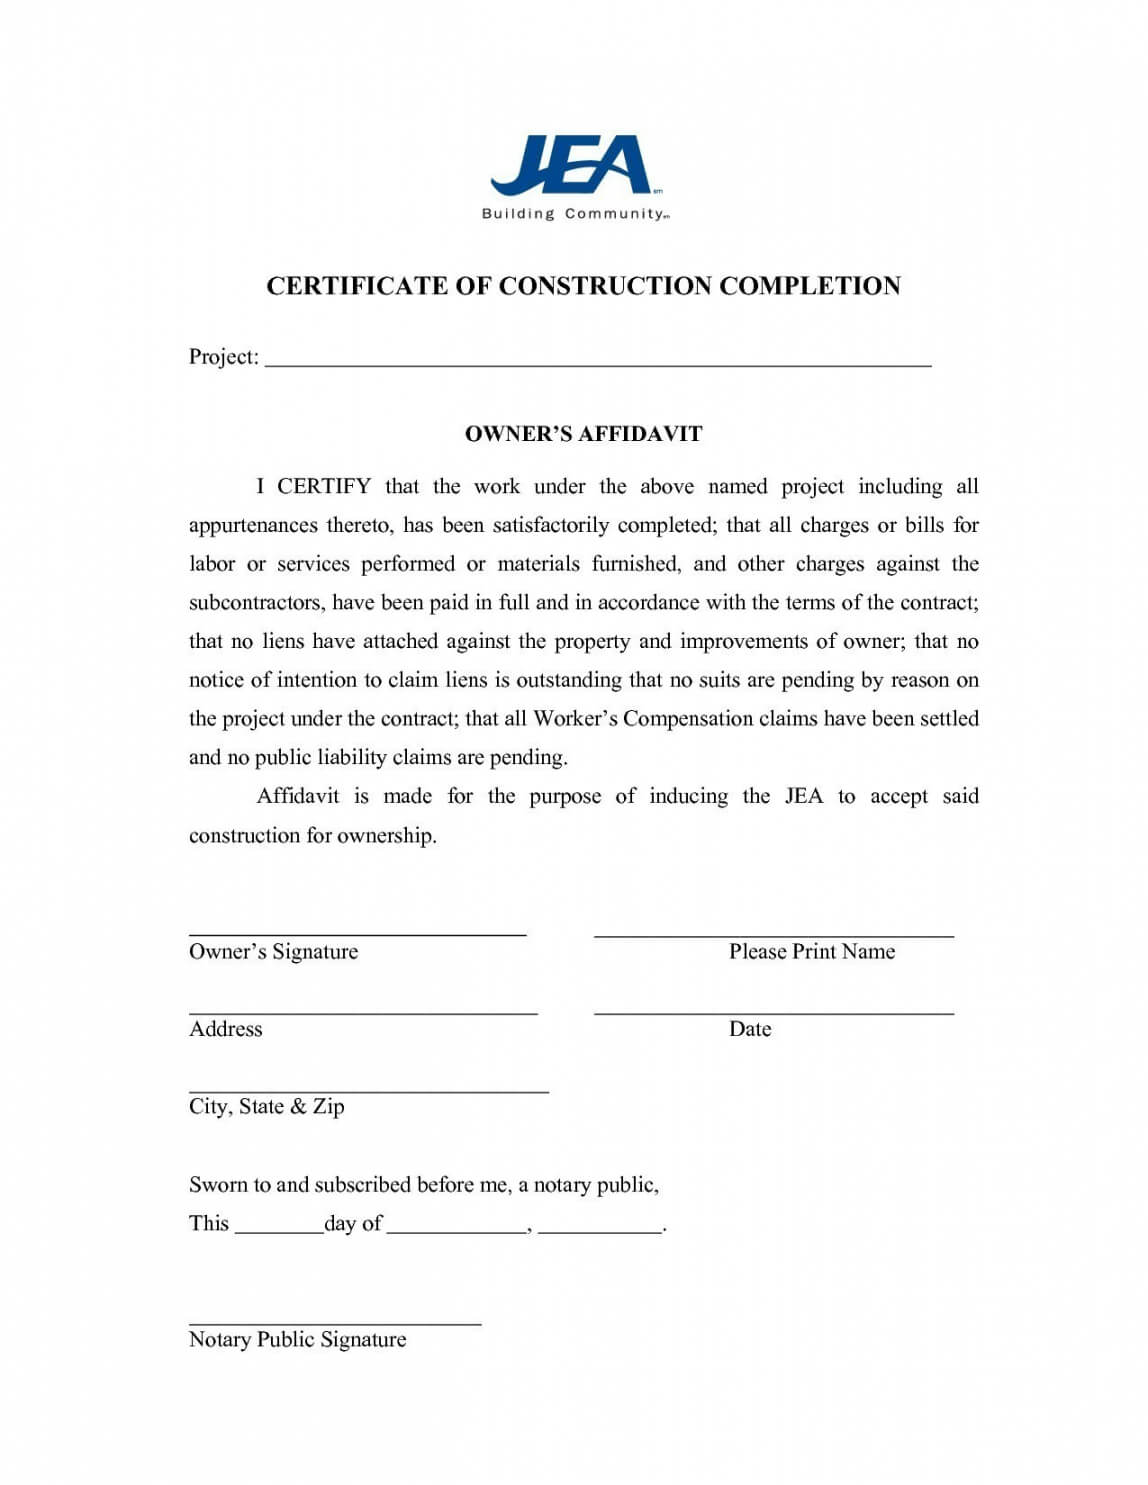 Construction Completion Certificate Template | Emetonlineblog regarding Certificate Template For Project Completion